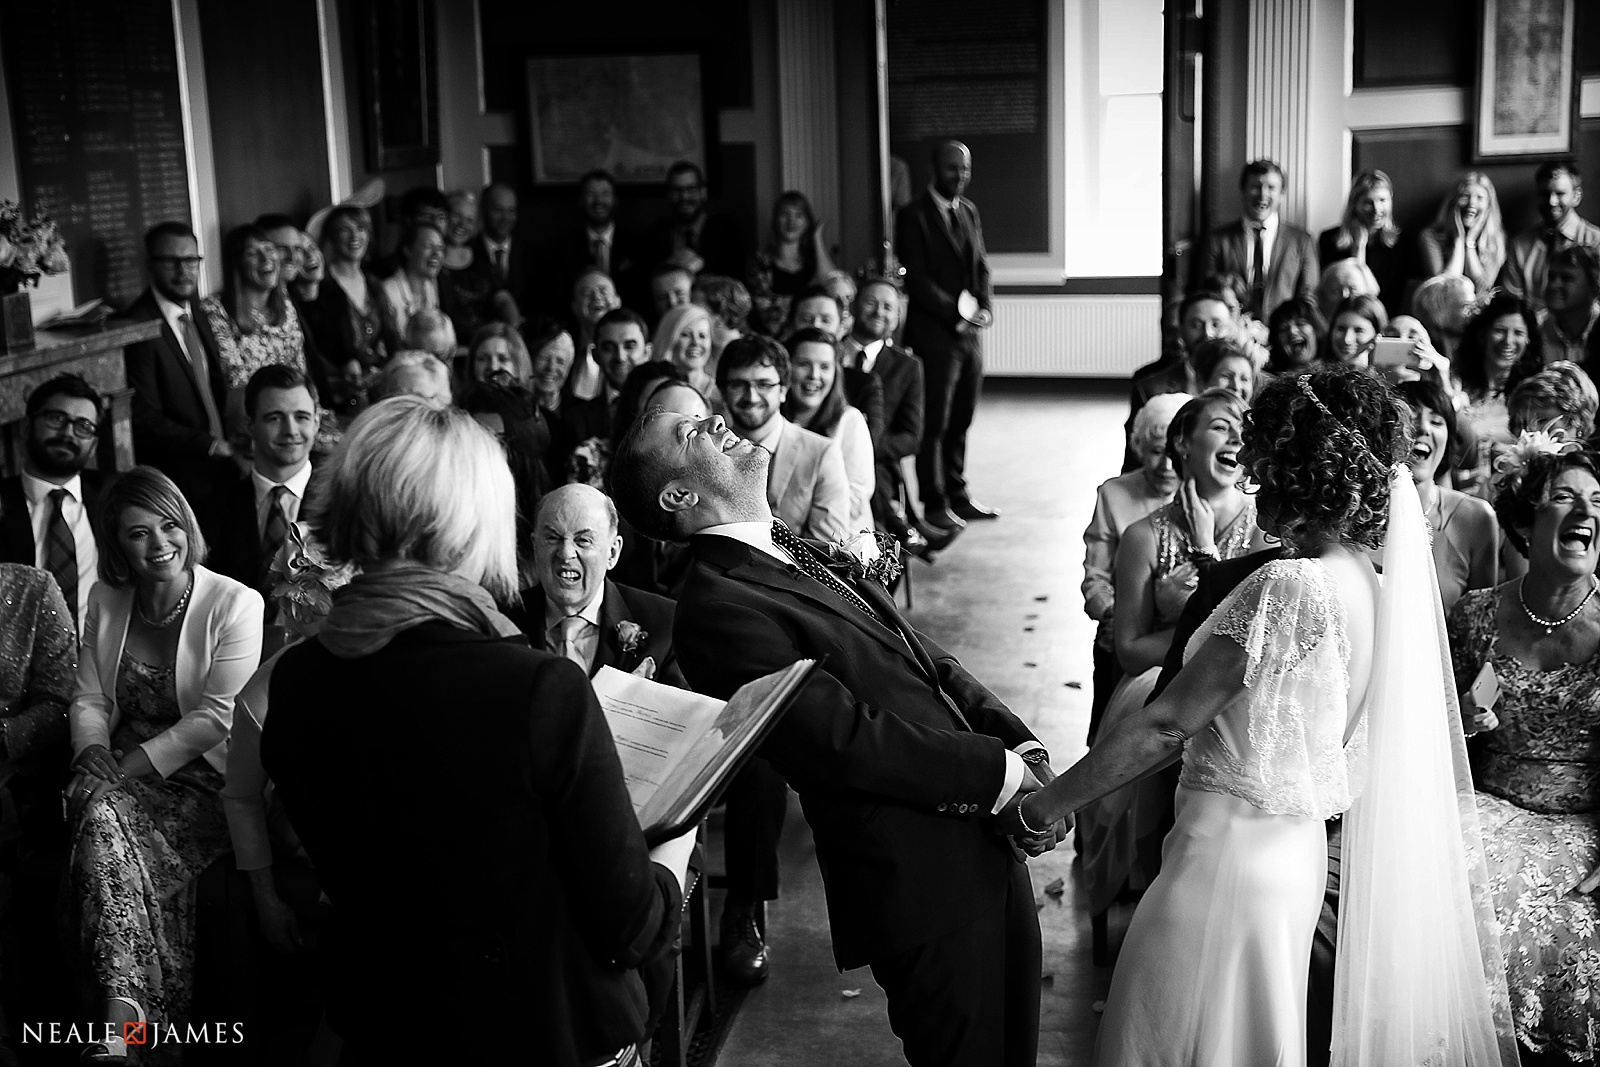 Black and white picture of a couple celebrating their wedding day